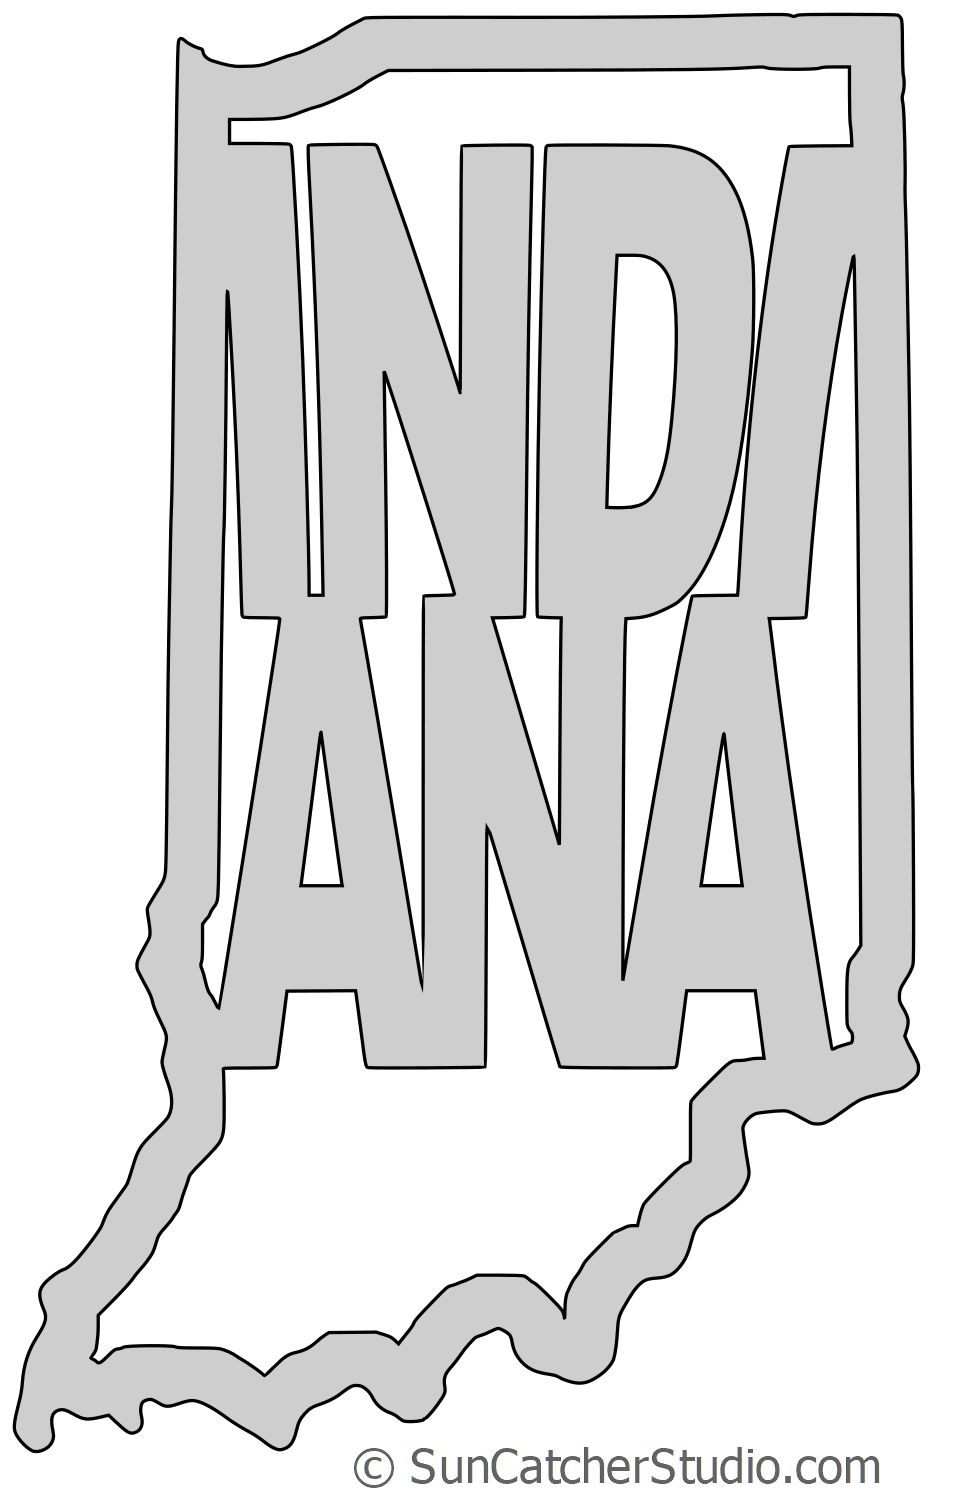 Indiana Map Shape Text Outline Scalable Vector Graphic Svg Printable Downloadable Free Scroll Saw Patt Scroll Saw Patterns Free Scroll Saw Patterns Scroll Saw